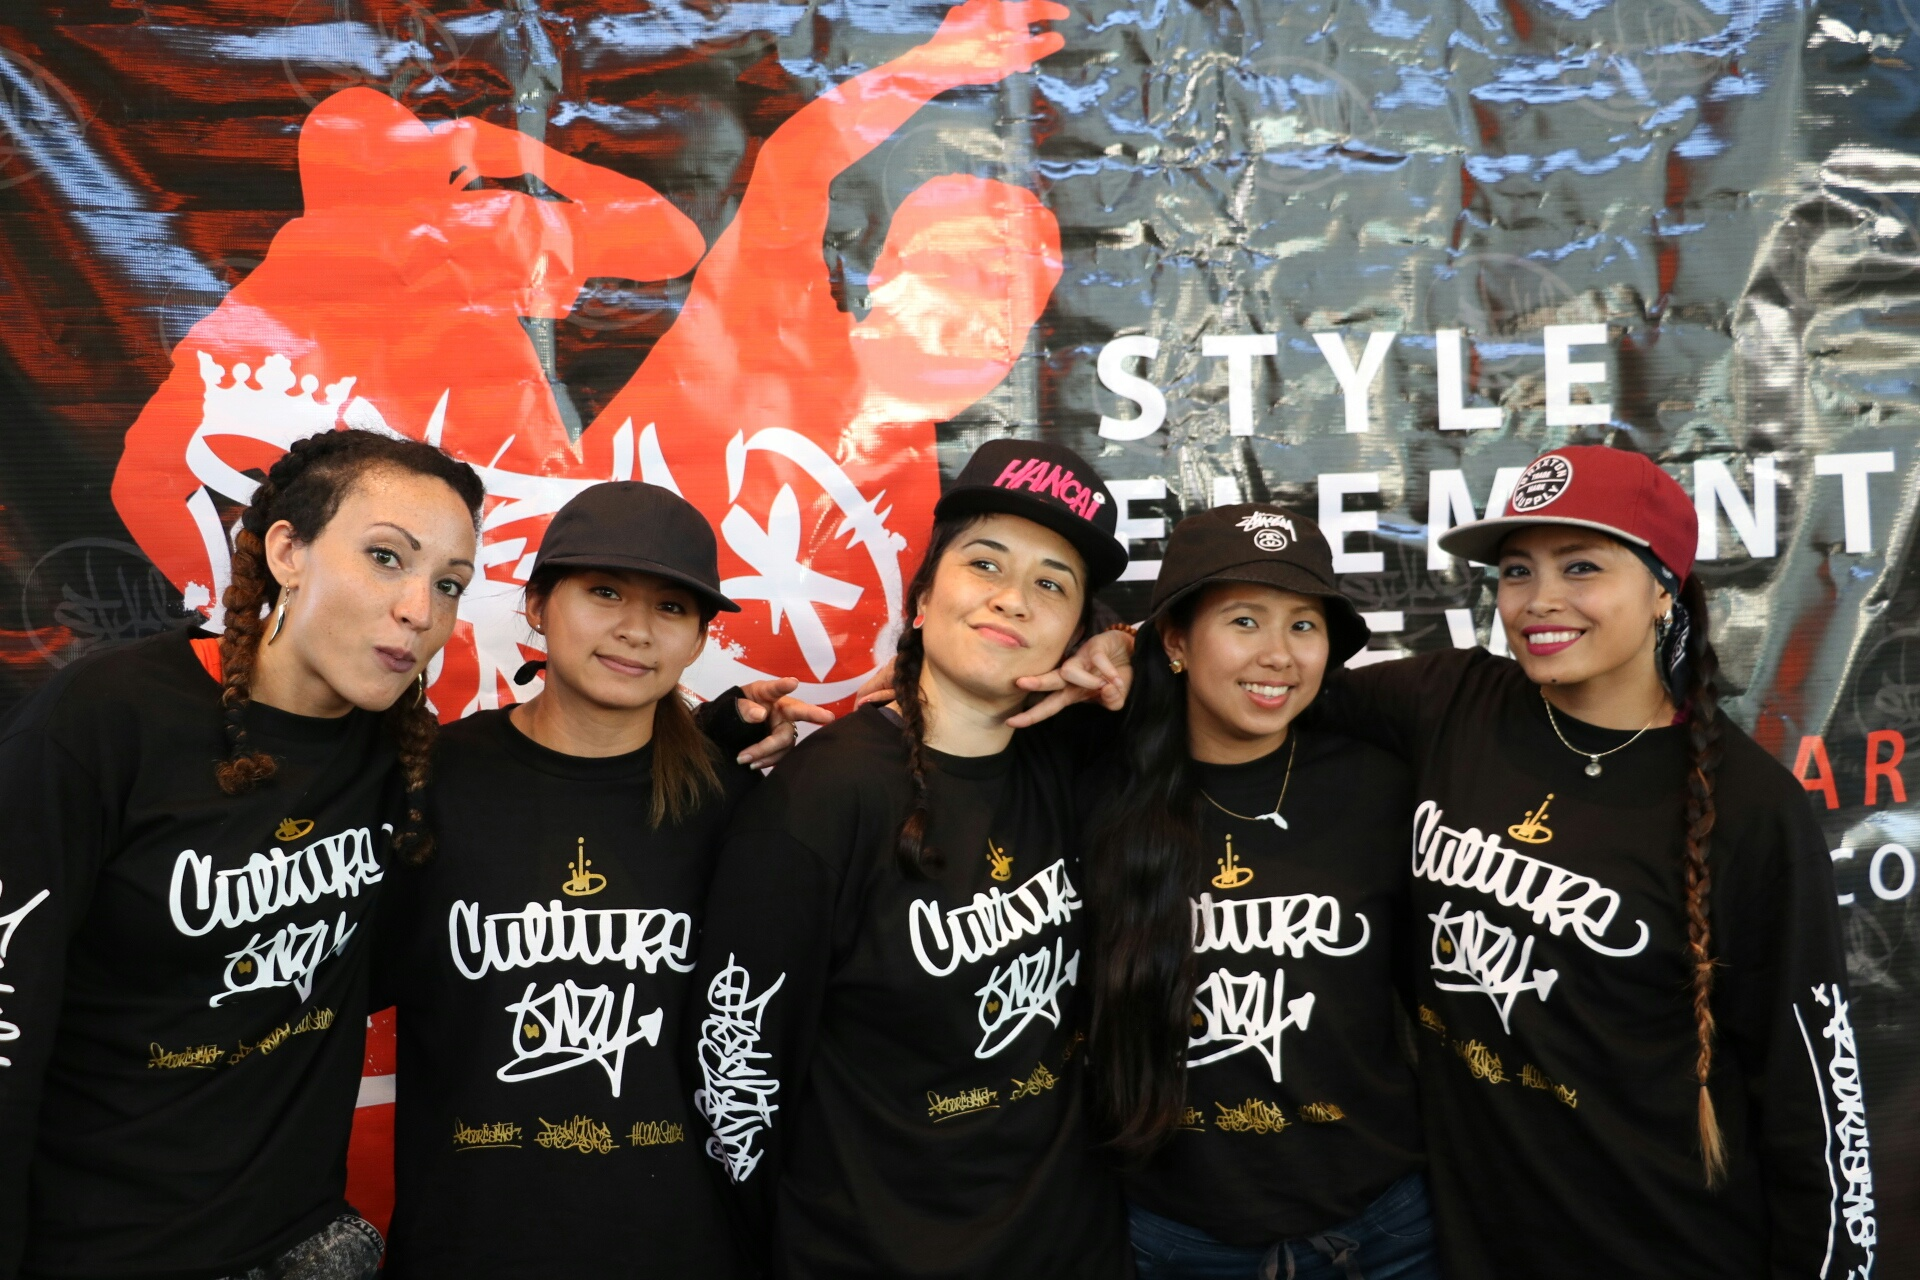 Style Elements 1 (Anna Steezeya, MyLinh, Miss Steezy One, Naty Lite and Genesis)